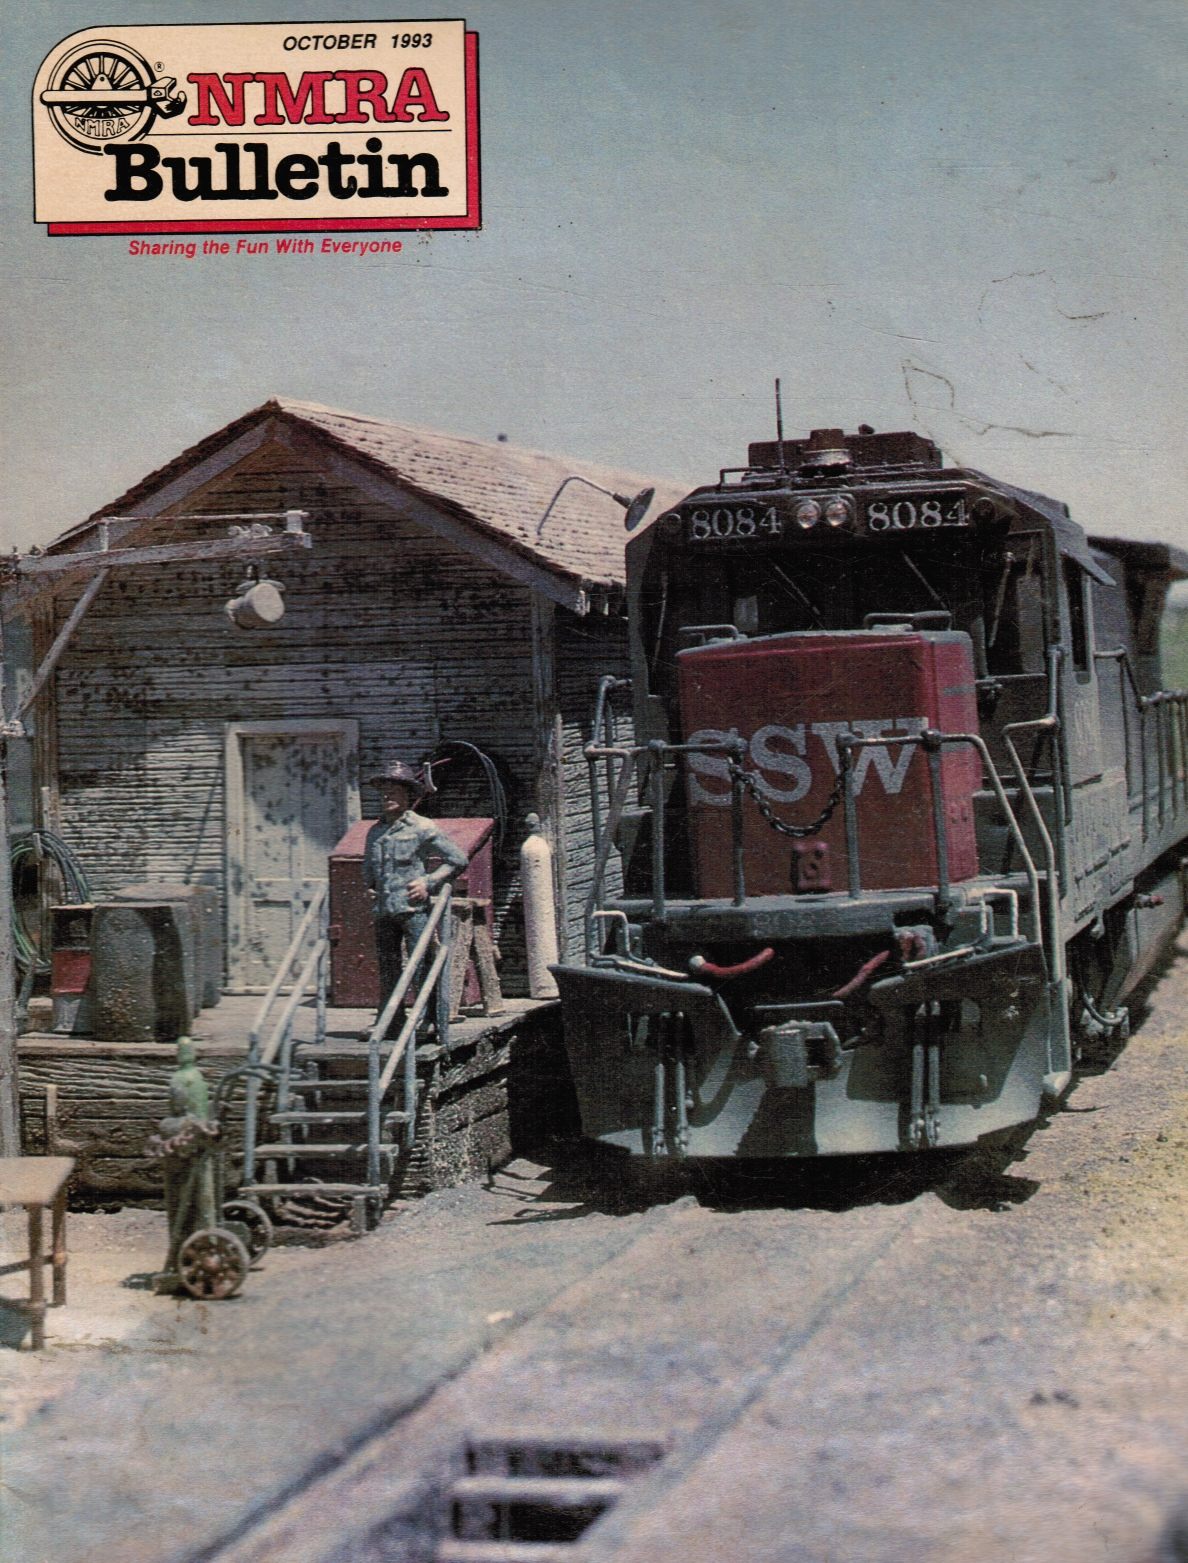 Image for NMRA [National Model Railroad Association] Bulletin, Vol.60, Number 2 - October 1993